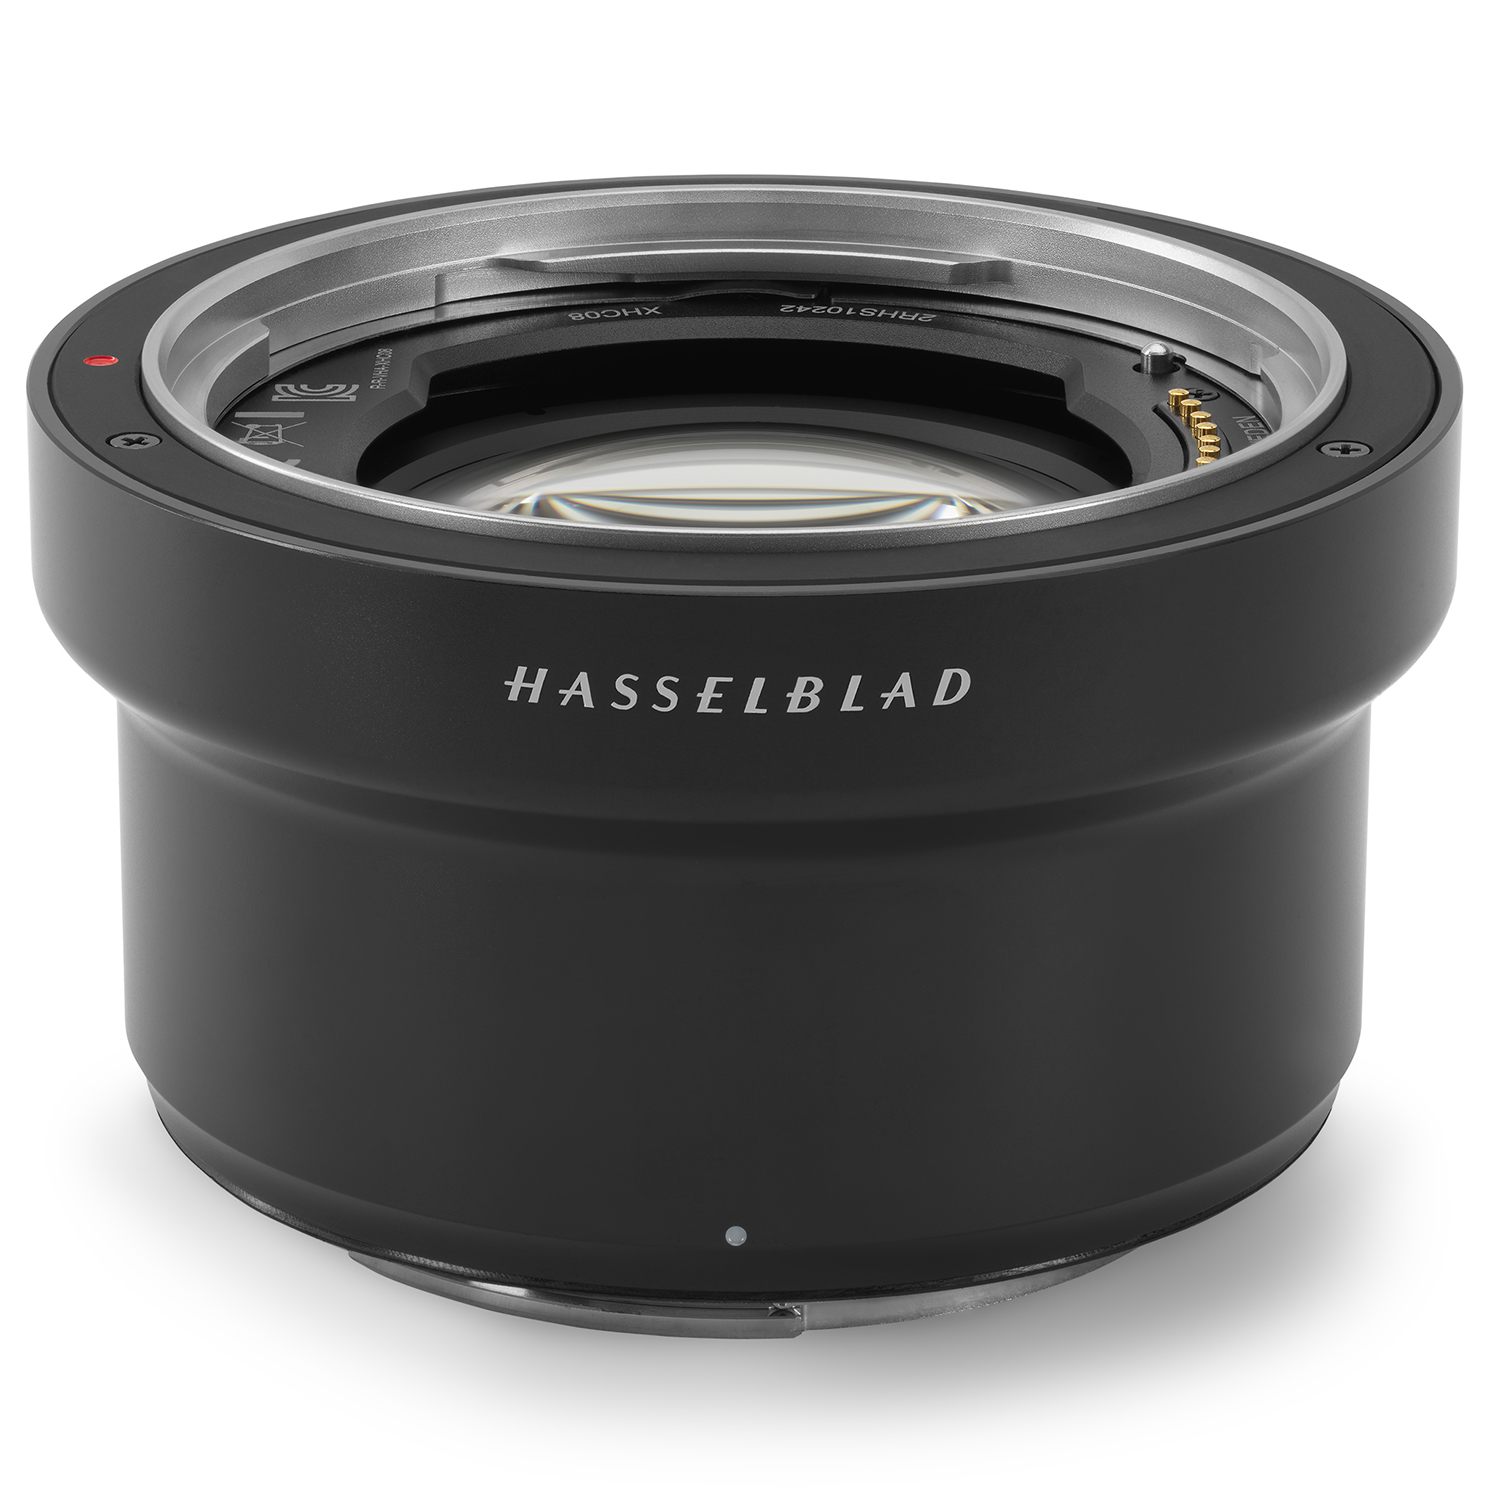 Hasselblad XH 0.8 Lens Adapter